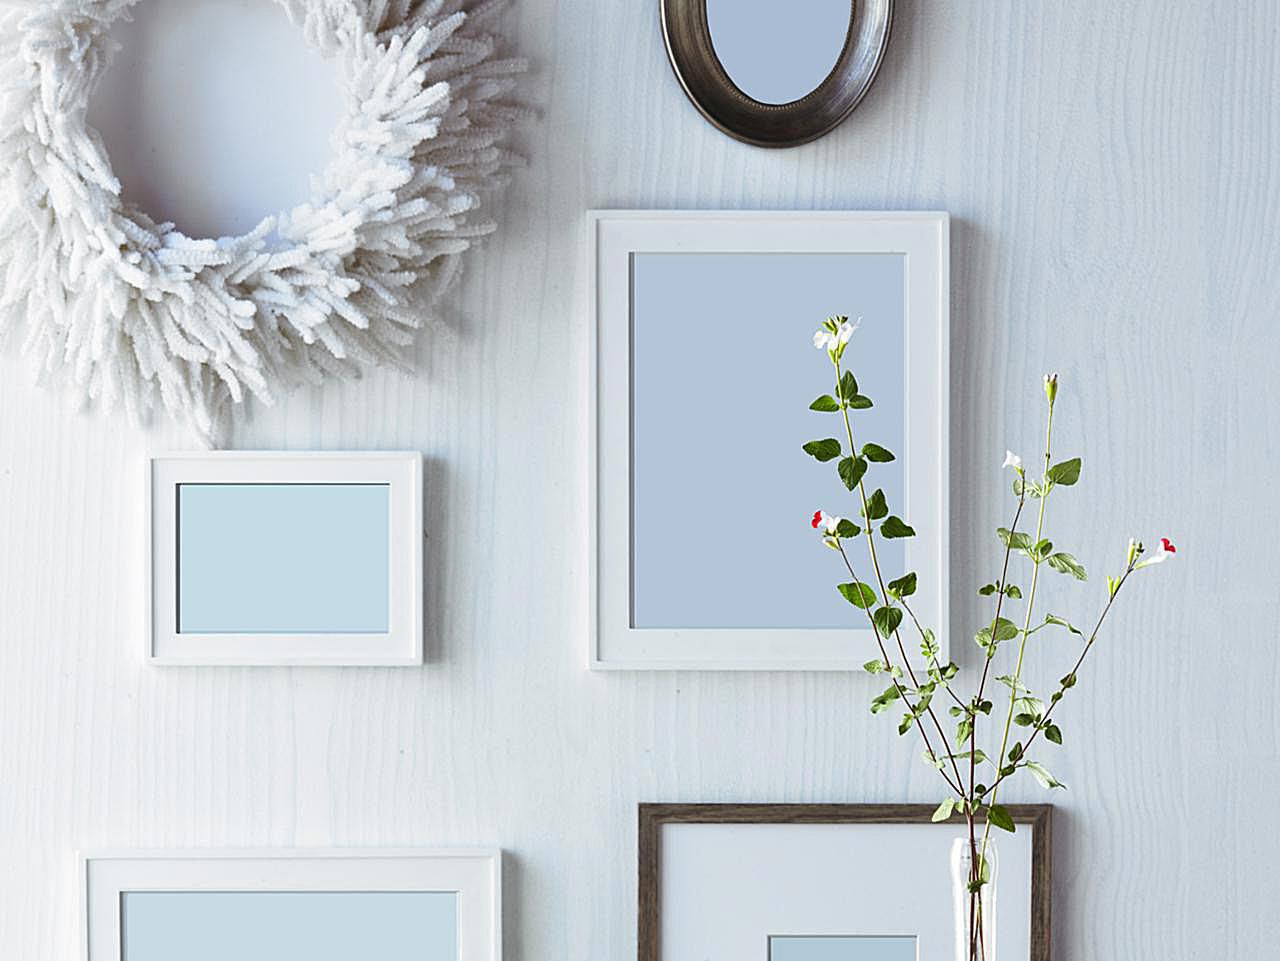 What To Put On Your Apartment Walls & Other Decor Ideas